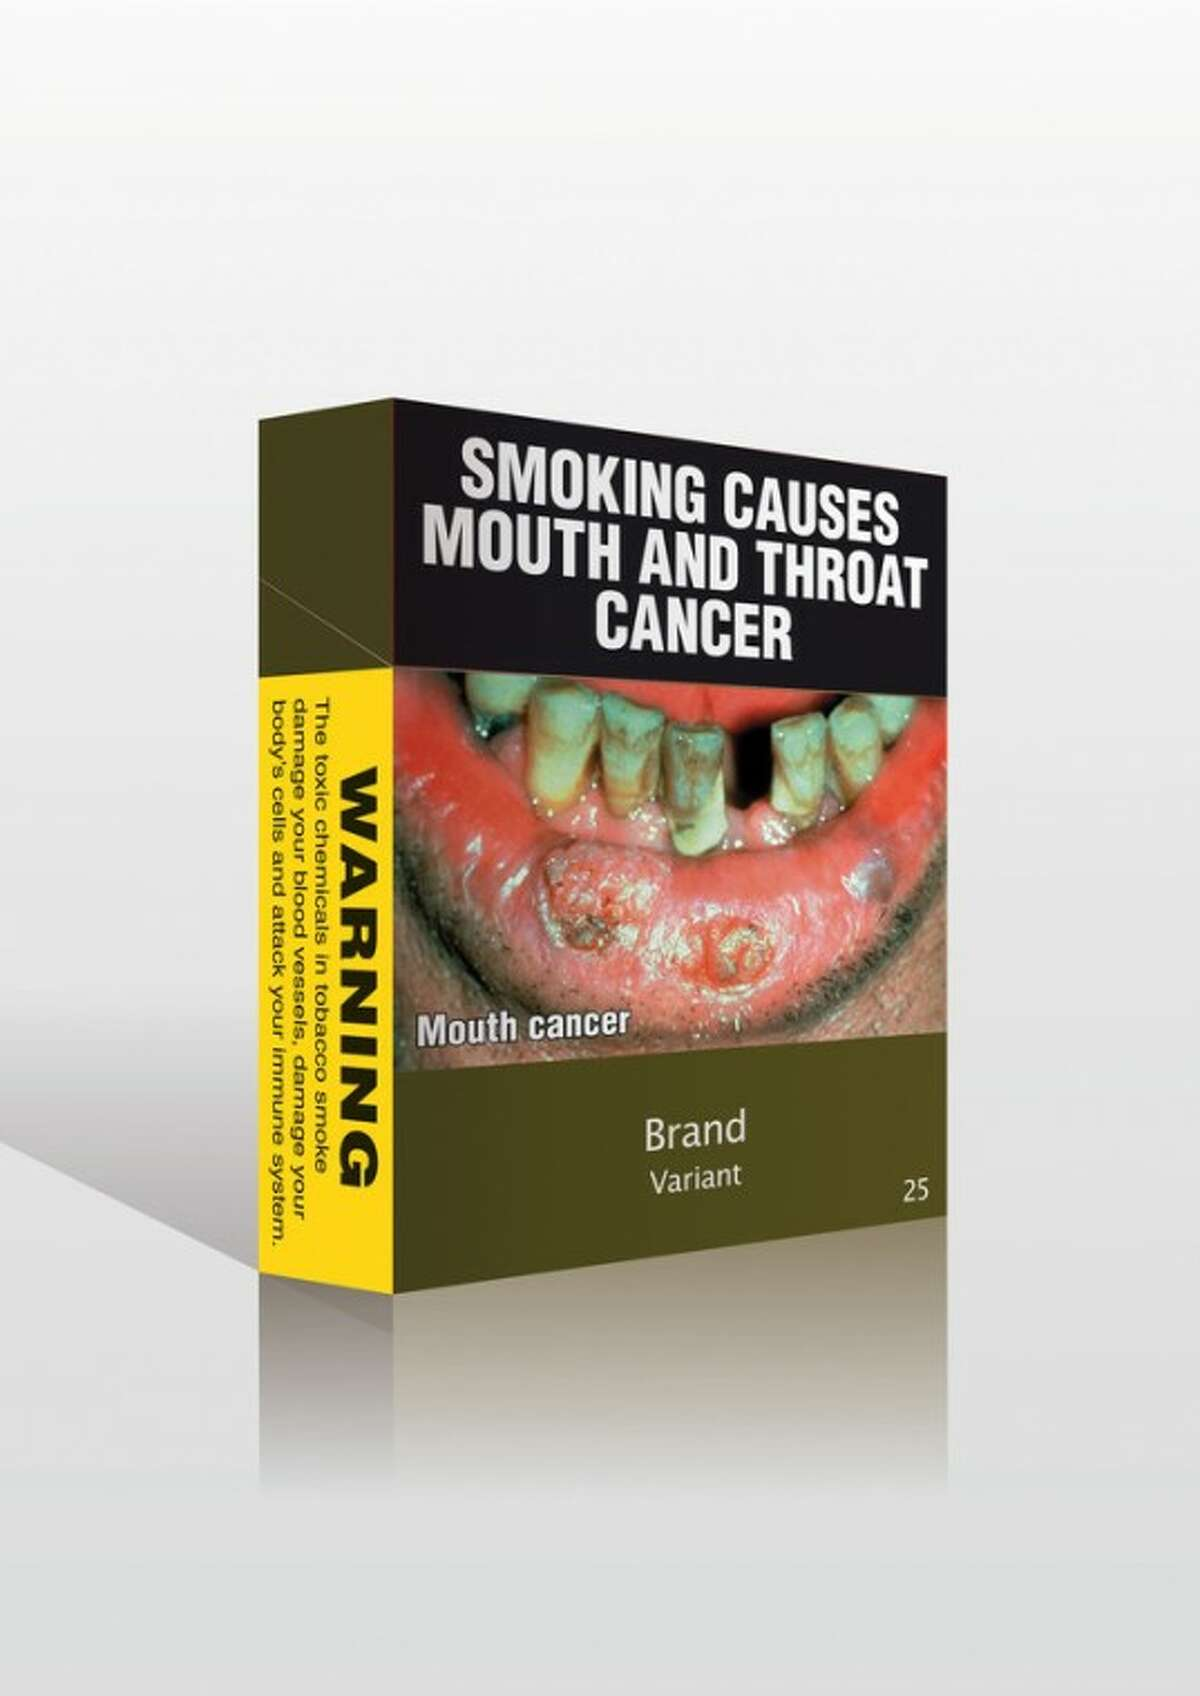 FILE - In this undated image provided by the Minister for Health and Ageing is proposed cigarette packaging stripped of all logos and replaced with graphic images that tobacco companies in Australia will be forced to use. Australia's highest court upheld the world's toughest law on cigarette promotion on Wednesday, Aug. 15, 2012, despite protests from tobacco companies that argued the value of their trademarks will be destroyed under new rules that will strip all logos from cigarette packs. (AP Photo/Minister for Health and Ageing, File) EDITORIAL USE ONLY